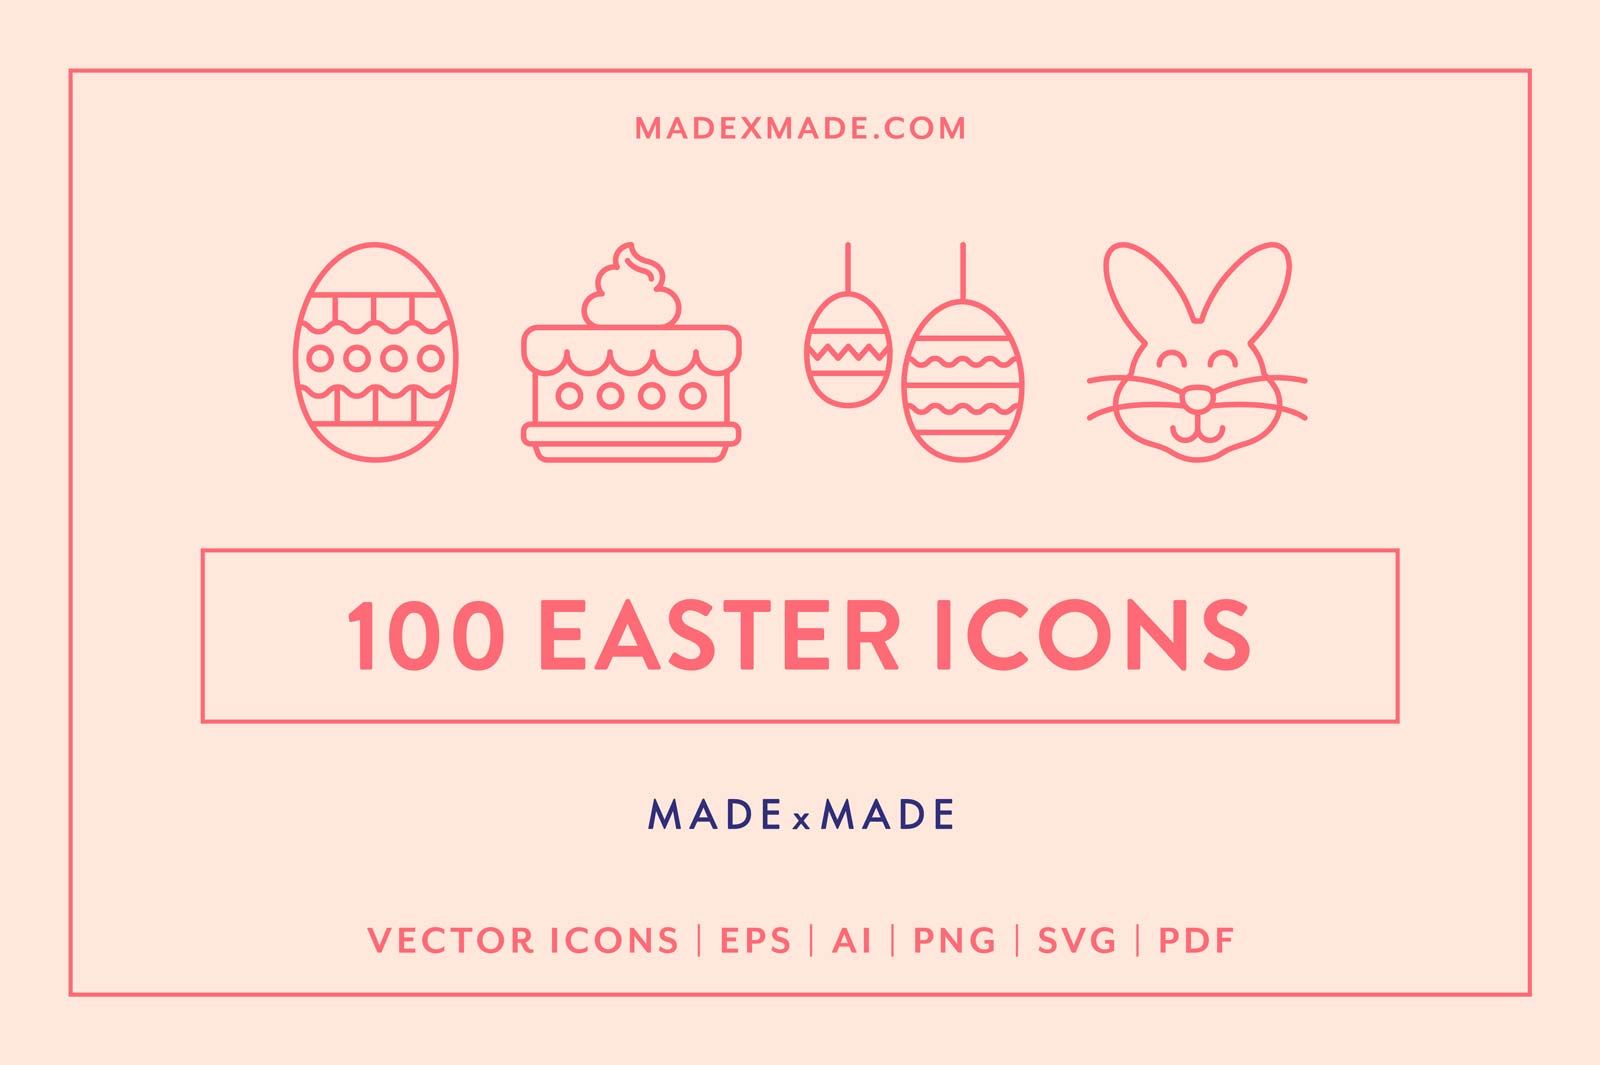 made x made easter